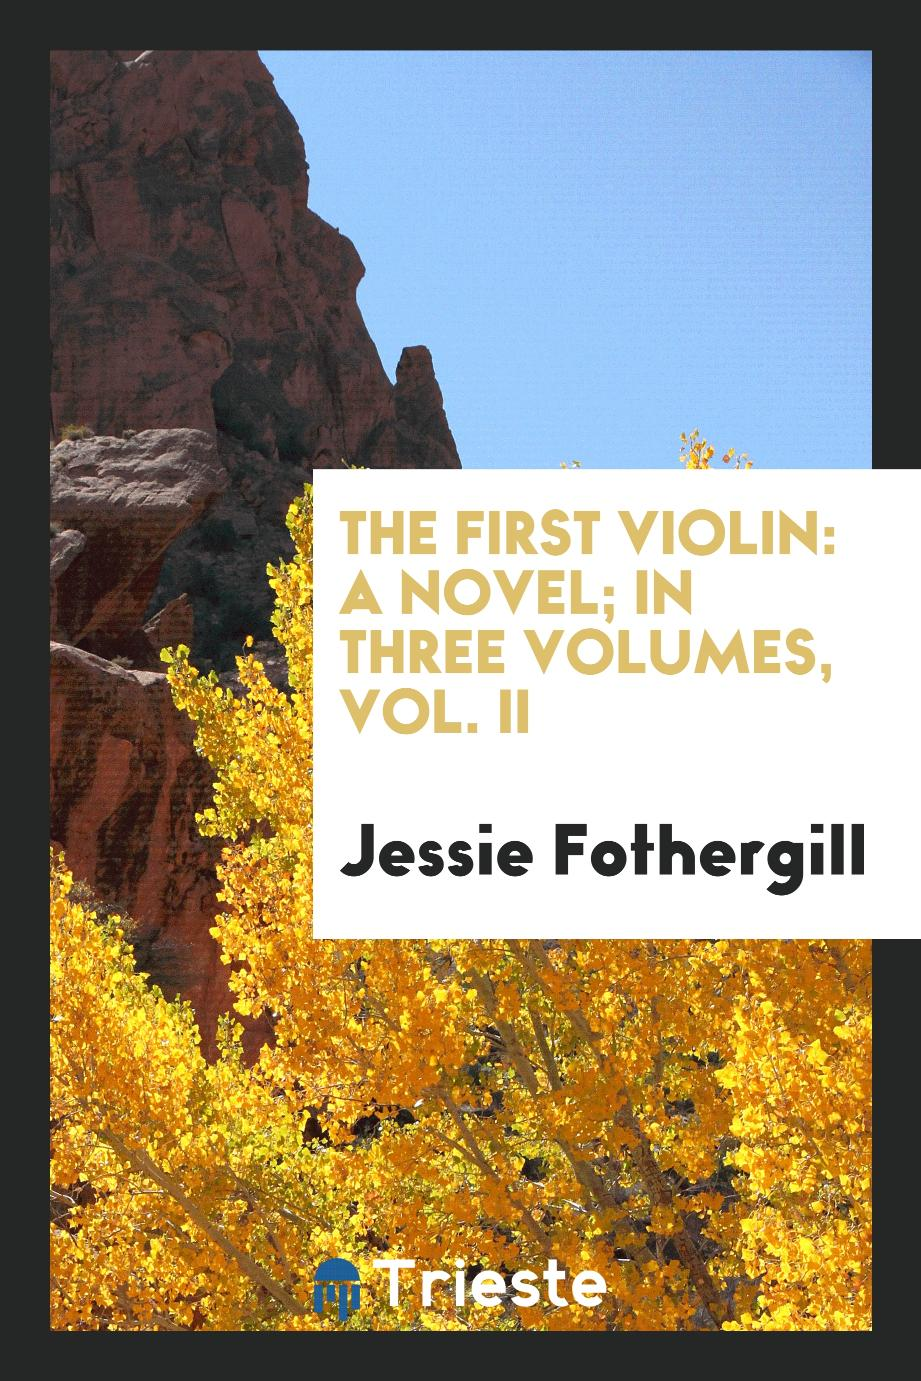 The First Violin: A Novel; In Three Volumes, Vol. II